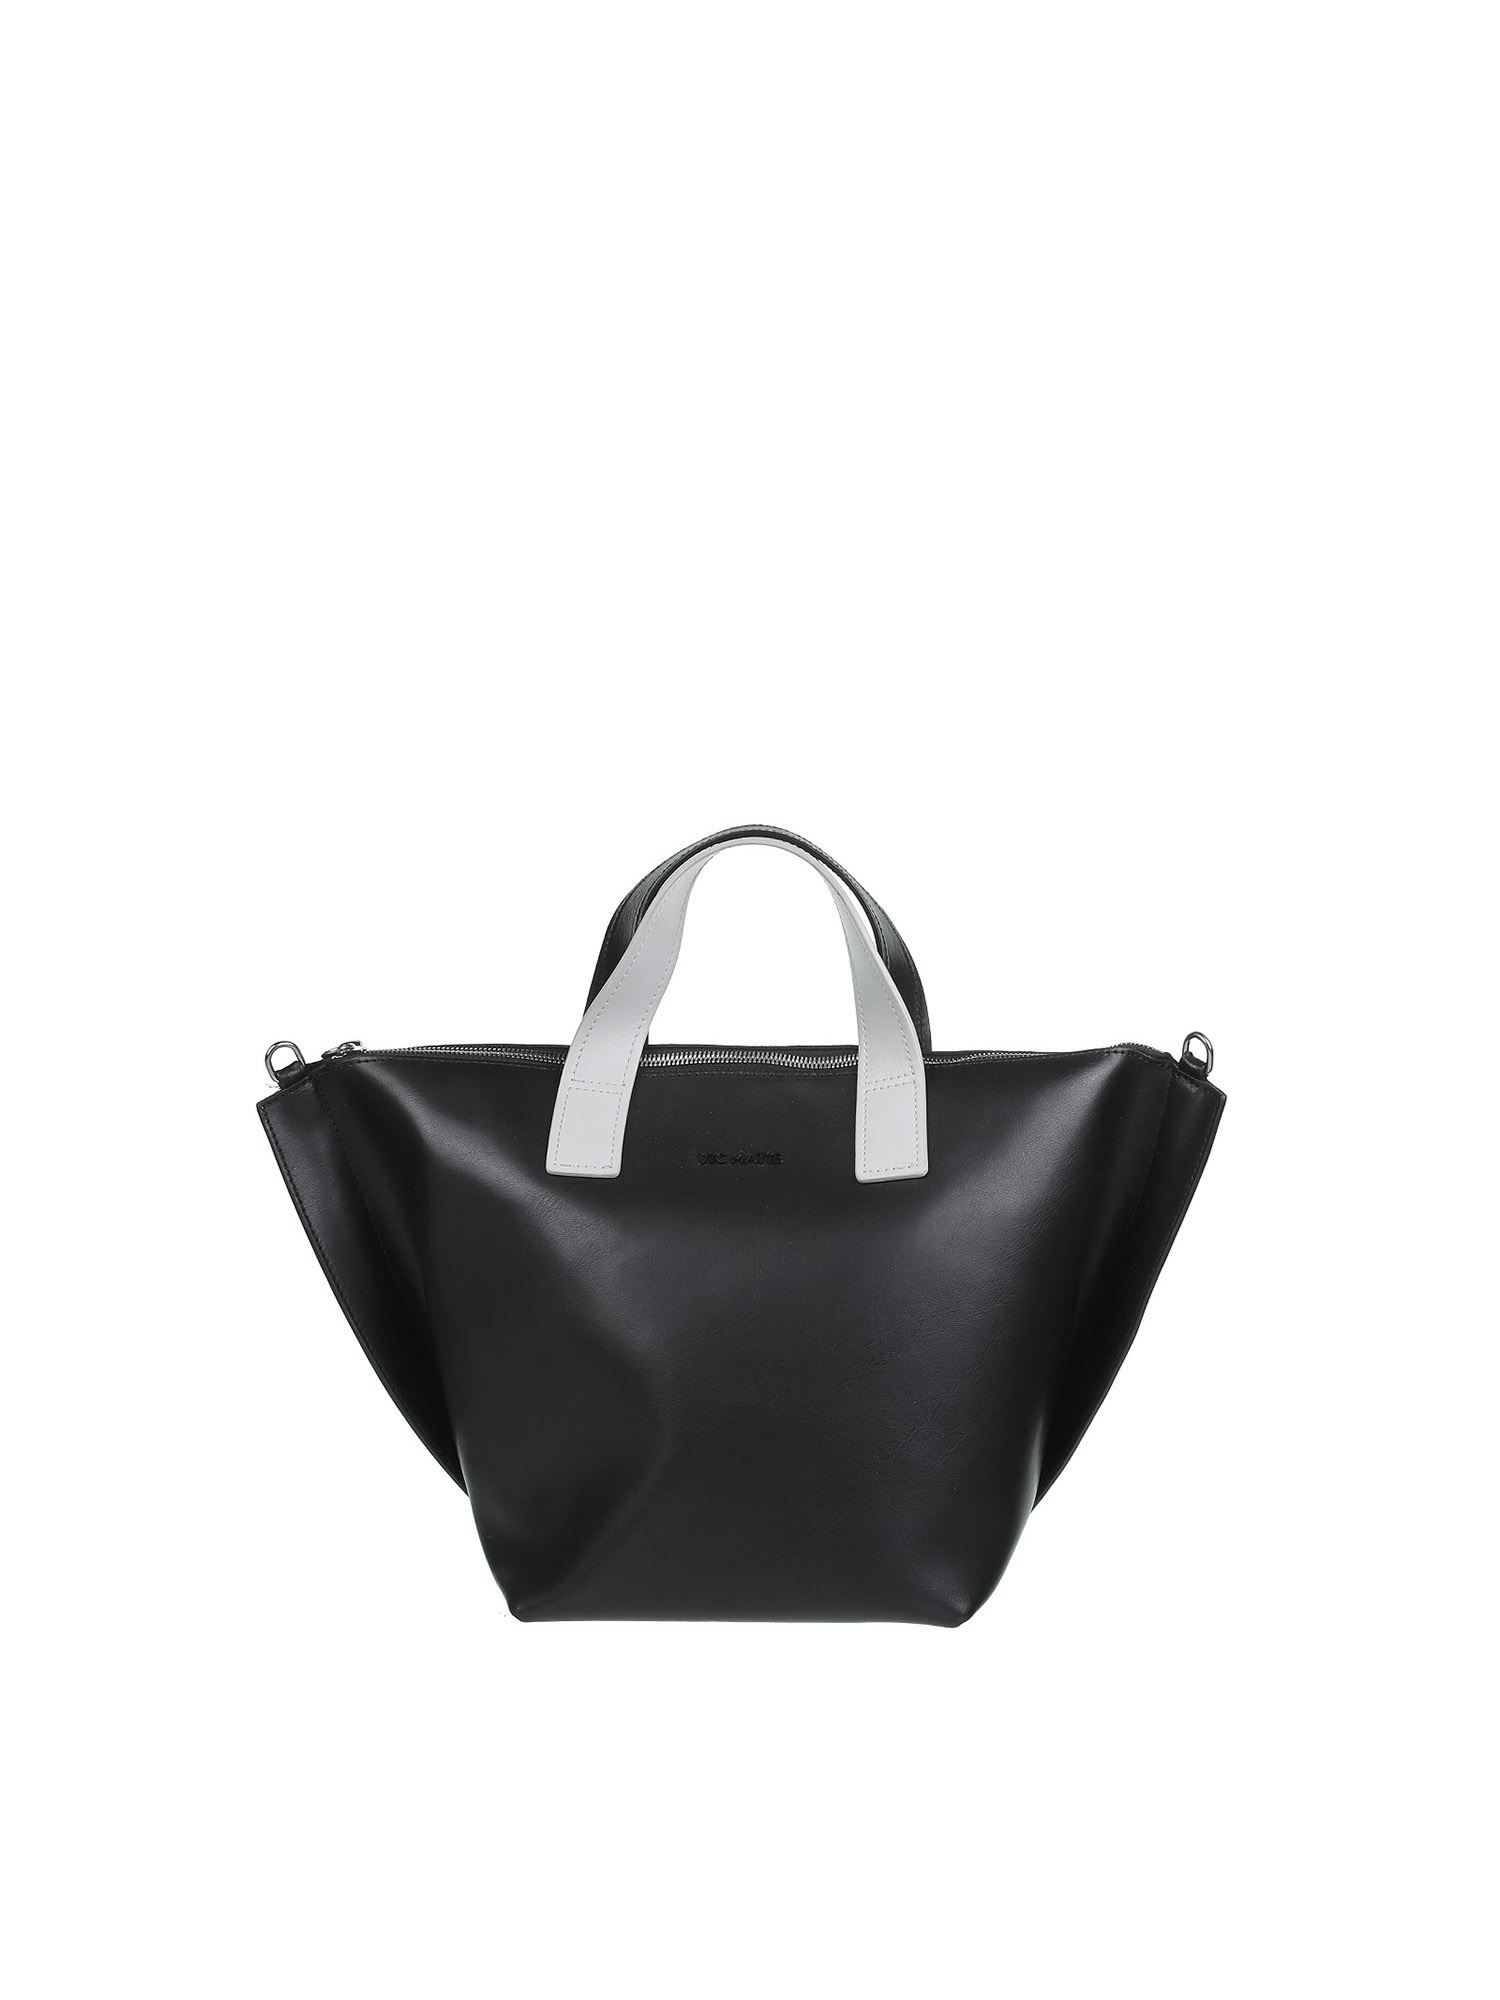 Vic Matie Totes ALIZEE SHOPPING BAG IN BLACK